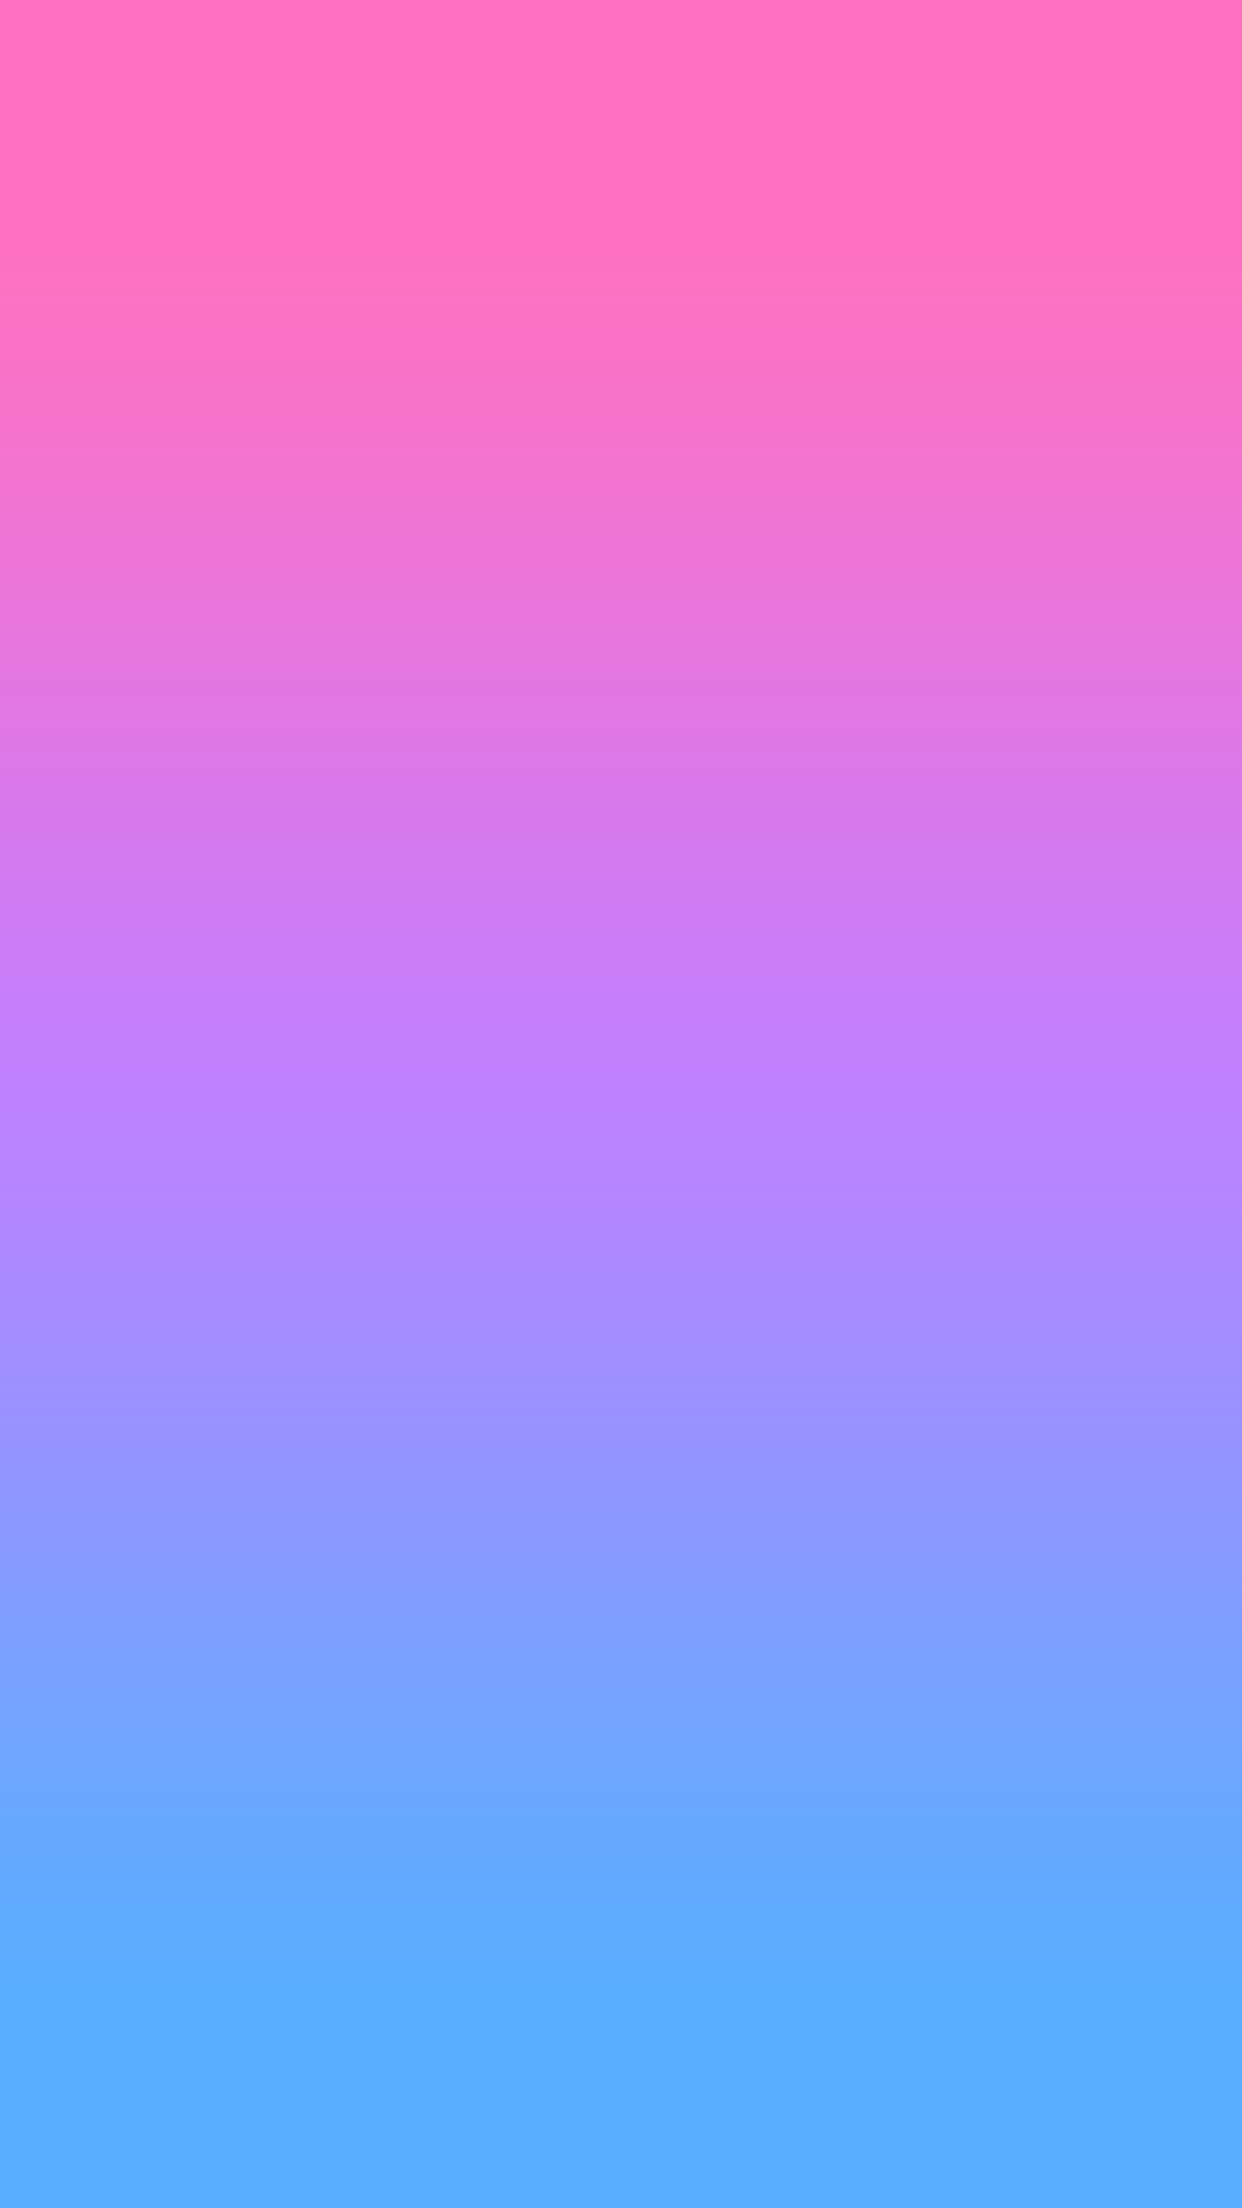 Res: 1242x2208, pink, purple, blue, violet, gradient, ombre, wallpaper, background,